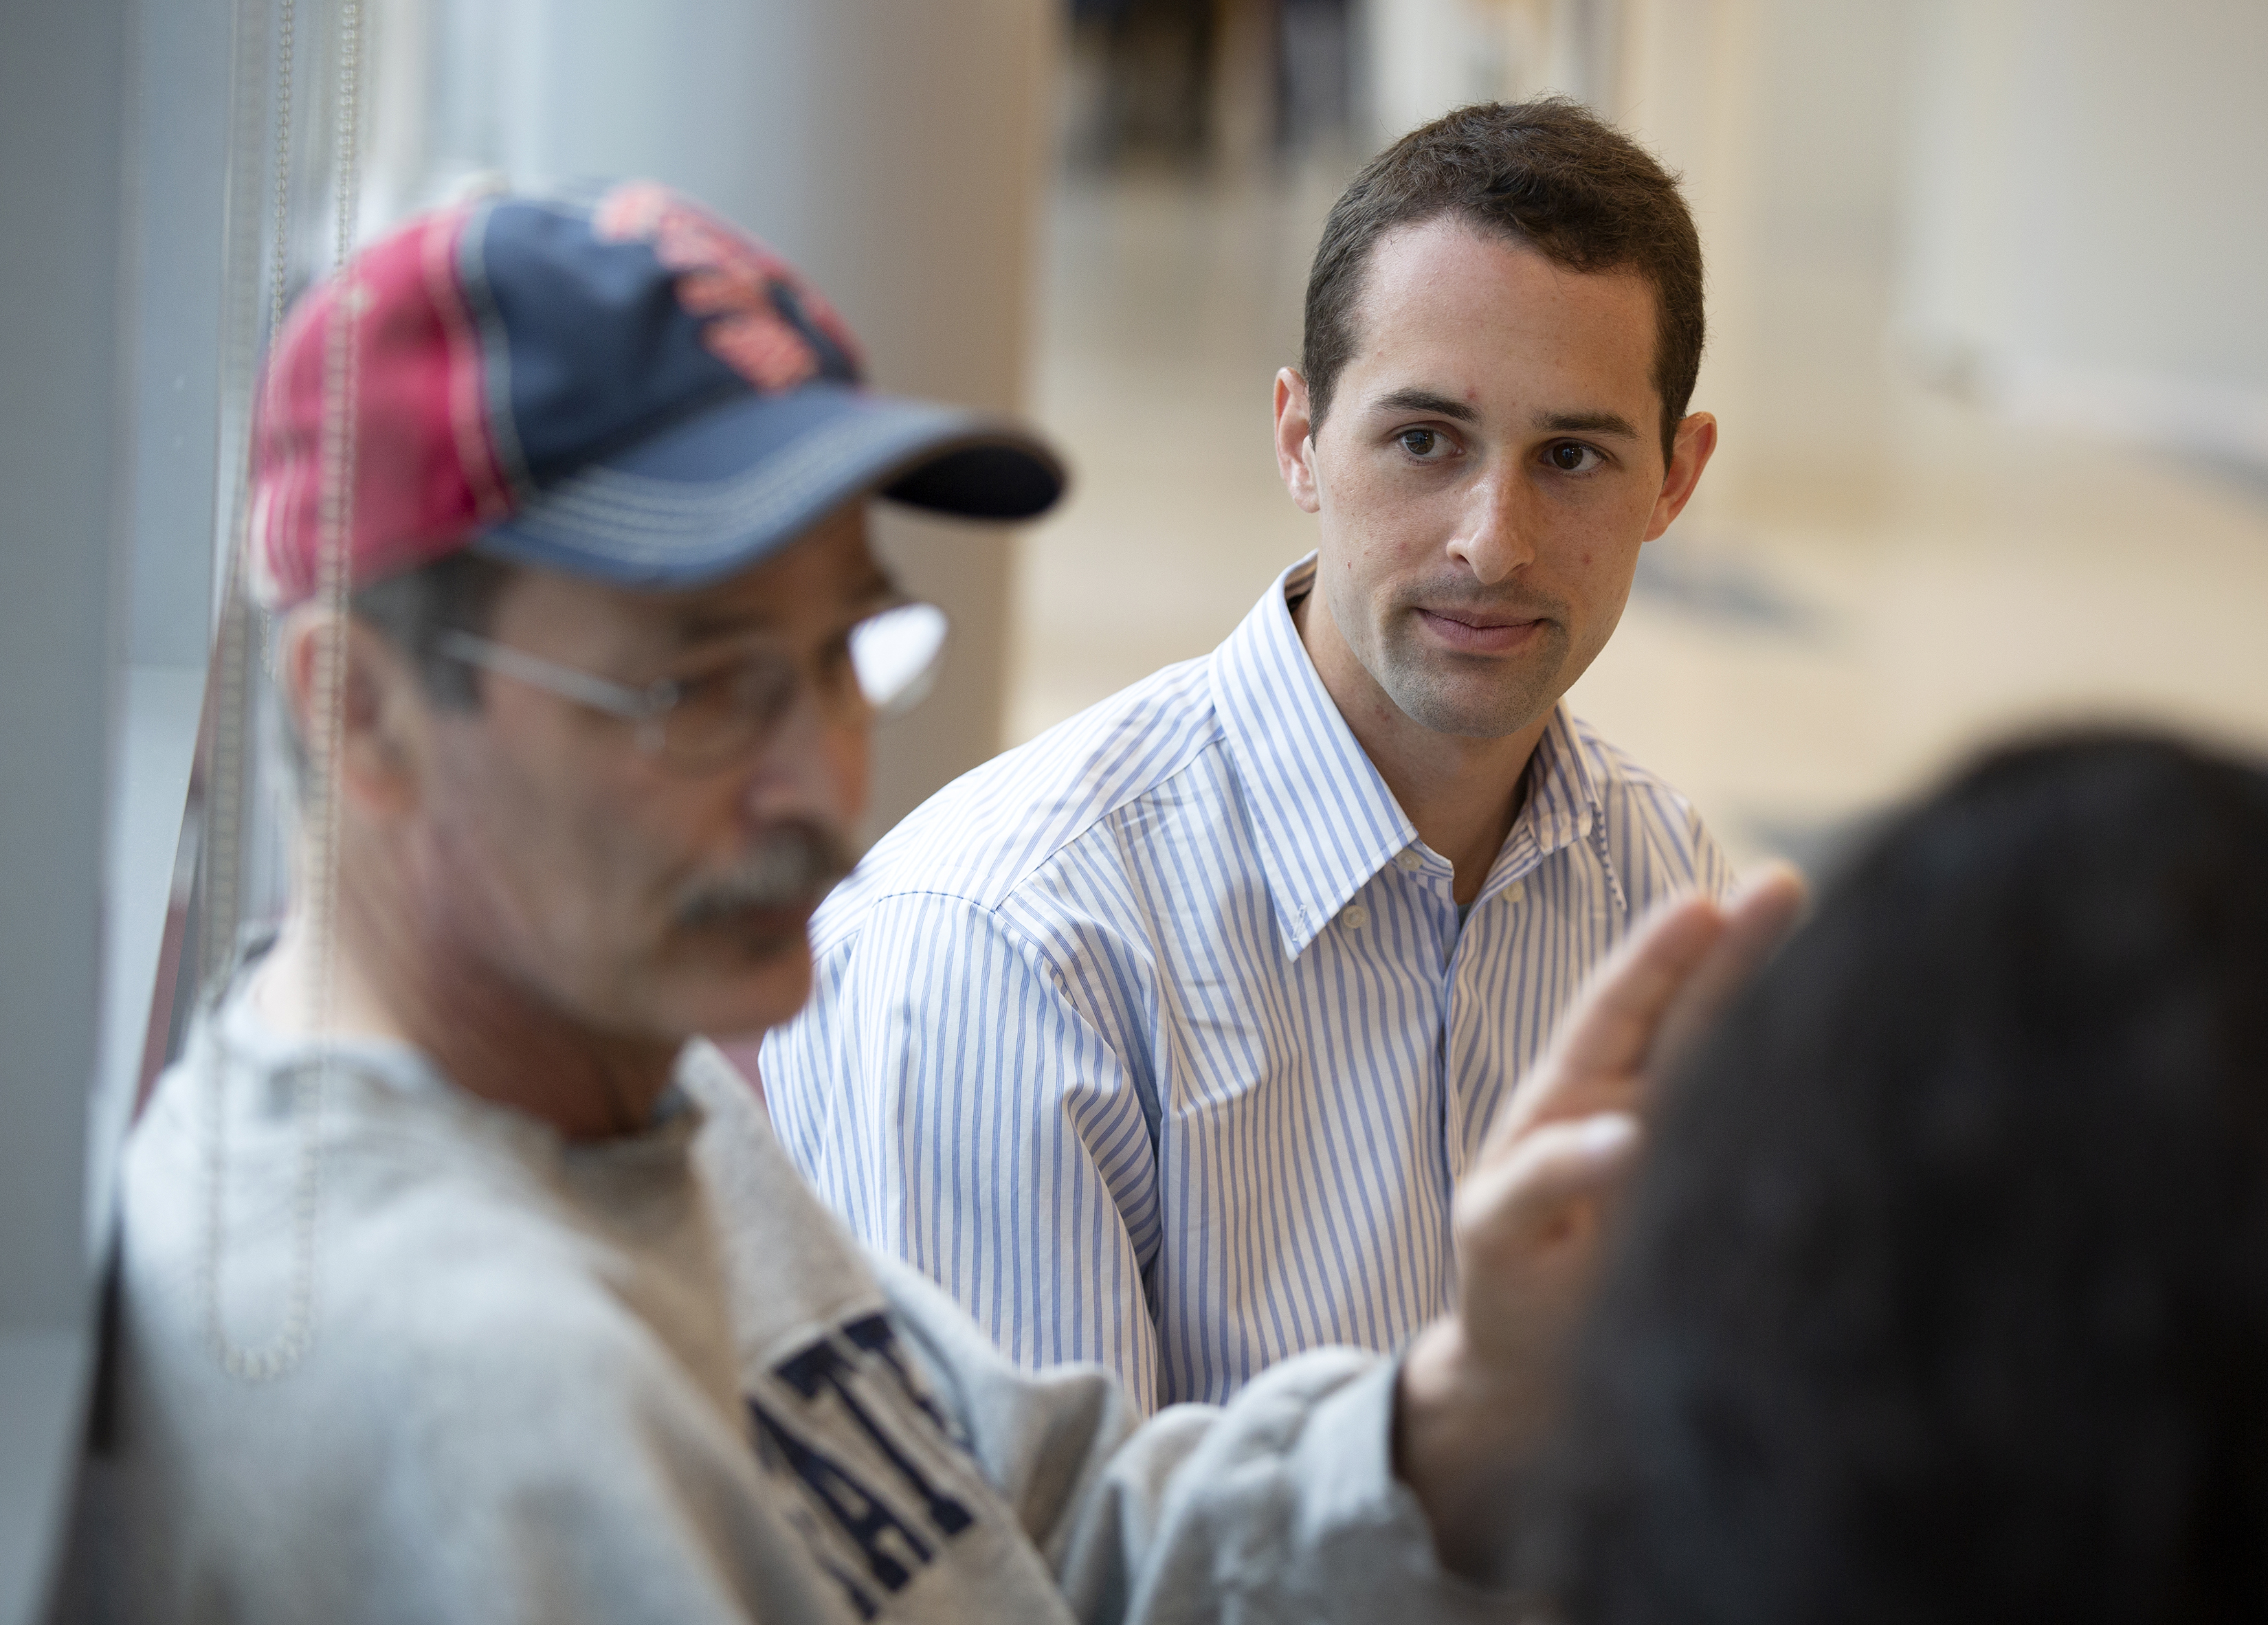 Timothy Groh, a first-year medical student, looks at Yancy Nauman as he talks, before Nauman goes in for chemotherapy treatment at Penn State Cancer Institute. Groh is in his 20s, has short hair and is wearing a striped dress shirt. Nauman is wearing glasses, a baseball cap and a sweatshirt. He is gesturing toward another person who is seen from behind. A clear plastic curtain is behind him.